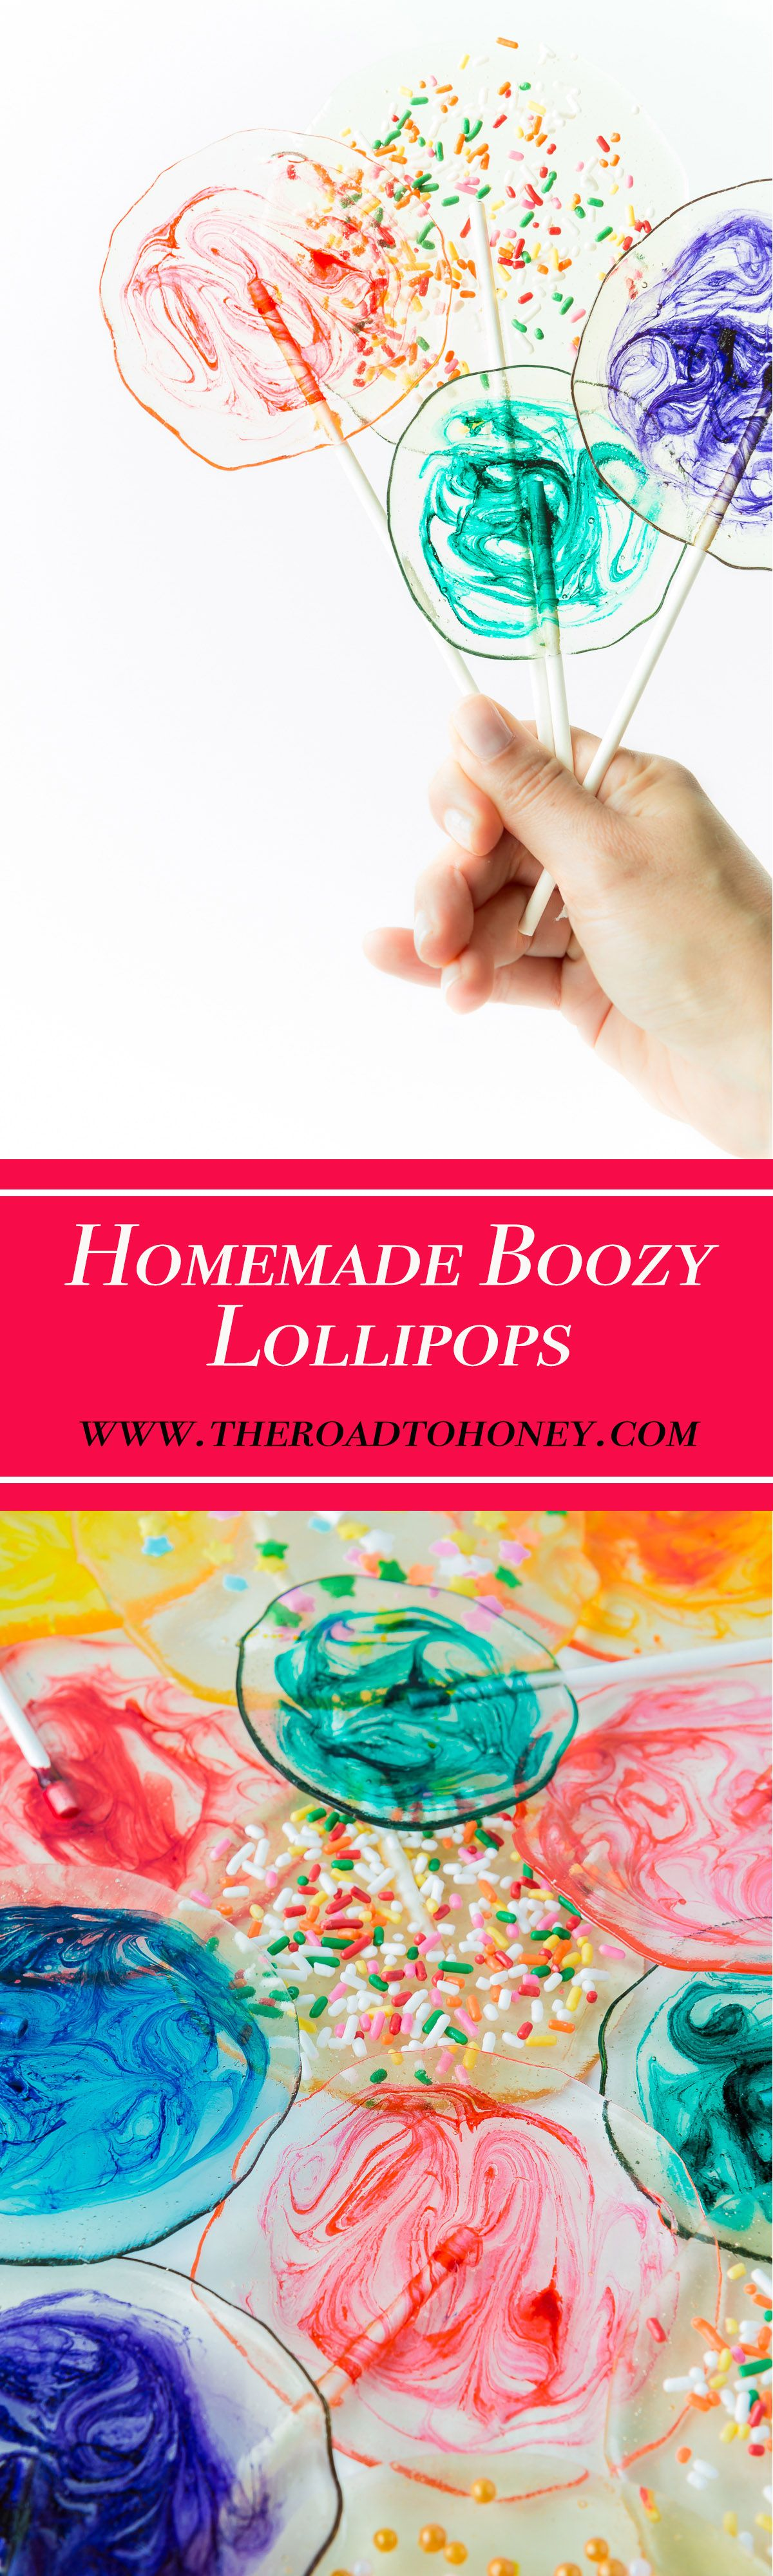 Homemade Boozy Lollipops   Making Your Own Crystal Clear Candy Homemade  Lollipops With Fun U0026 Colorful Design Inspirations